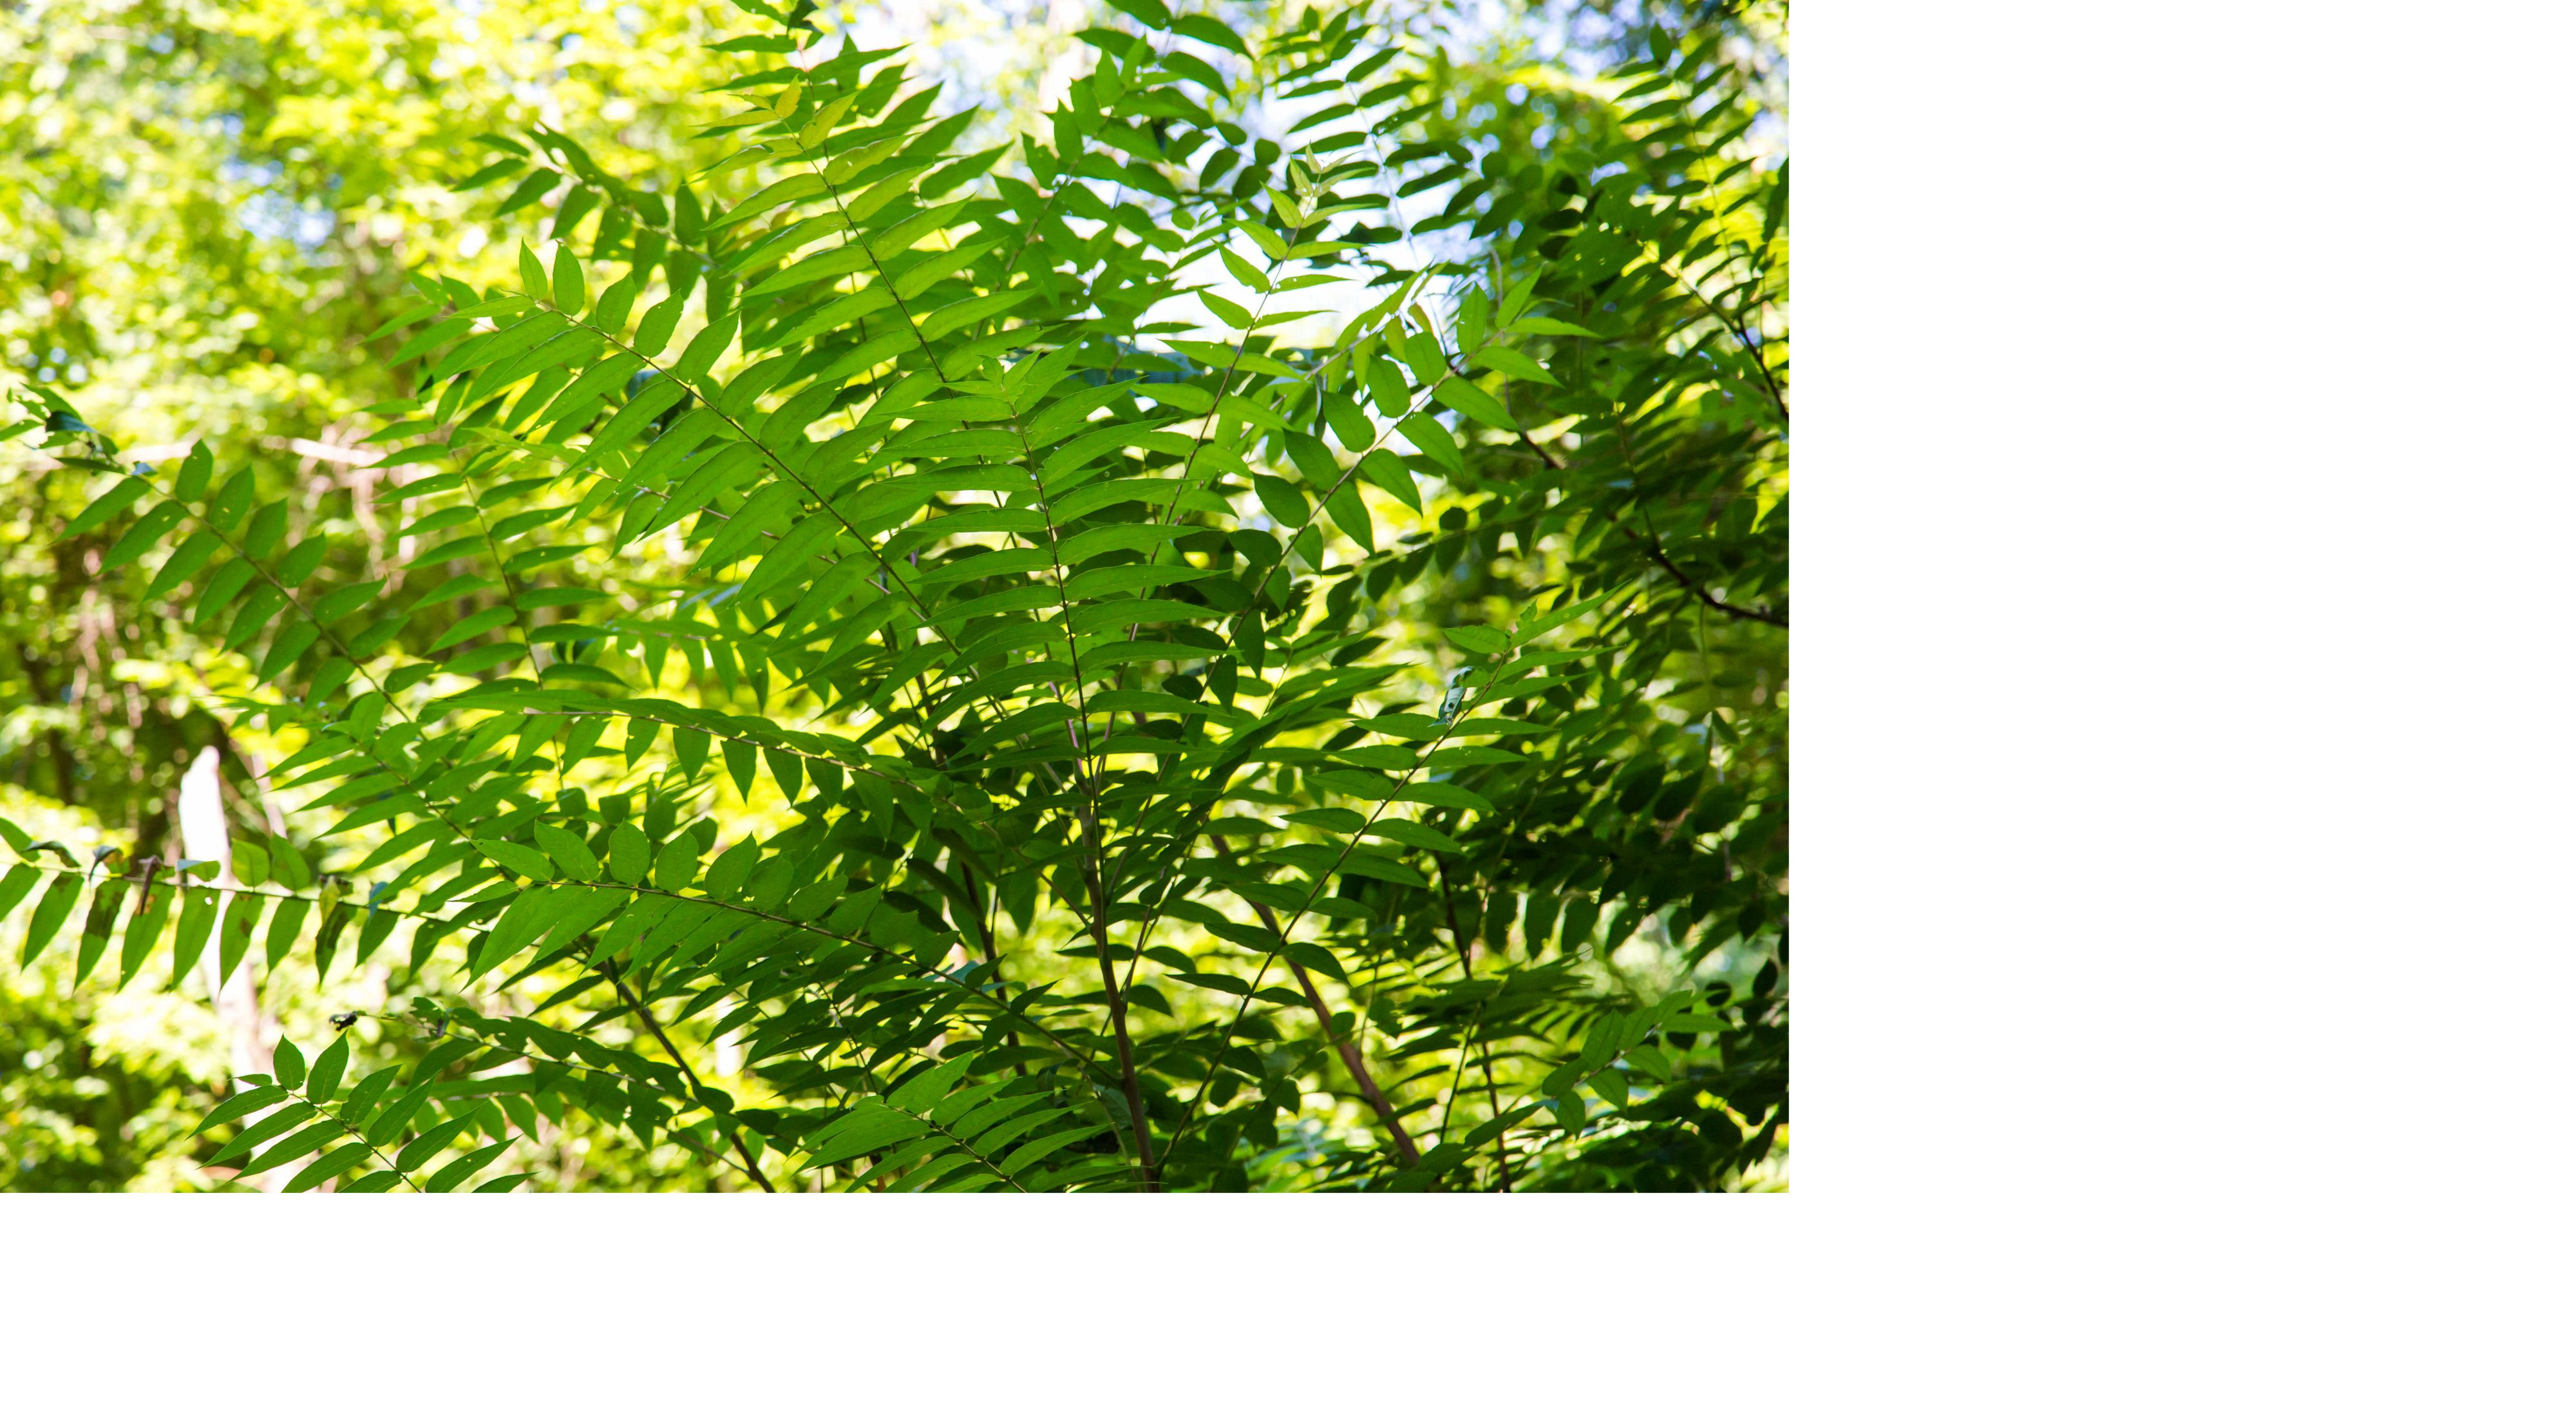 invasive plant species tree of heaven with pinnately compound leaves